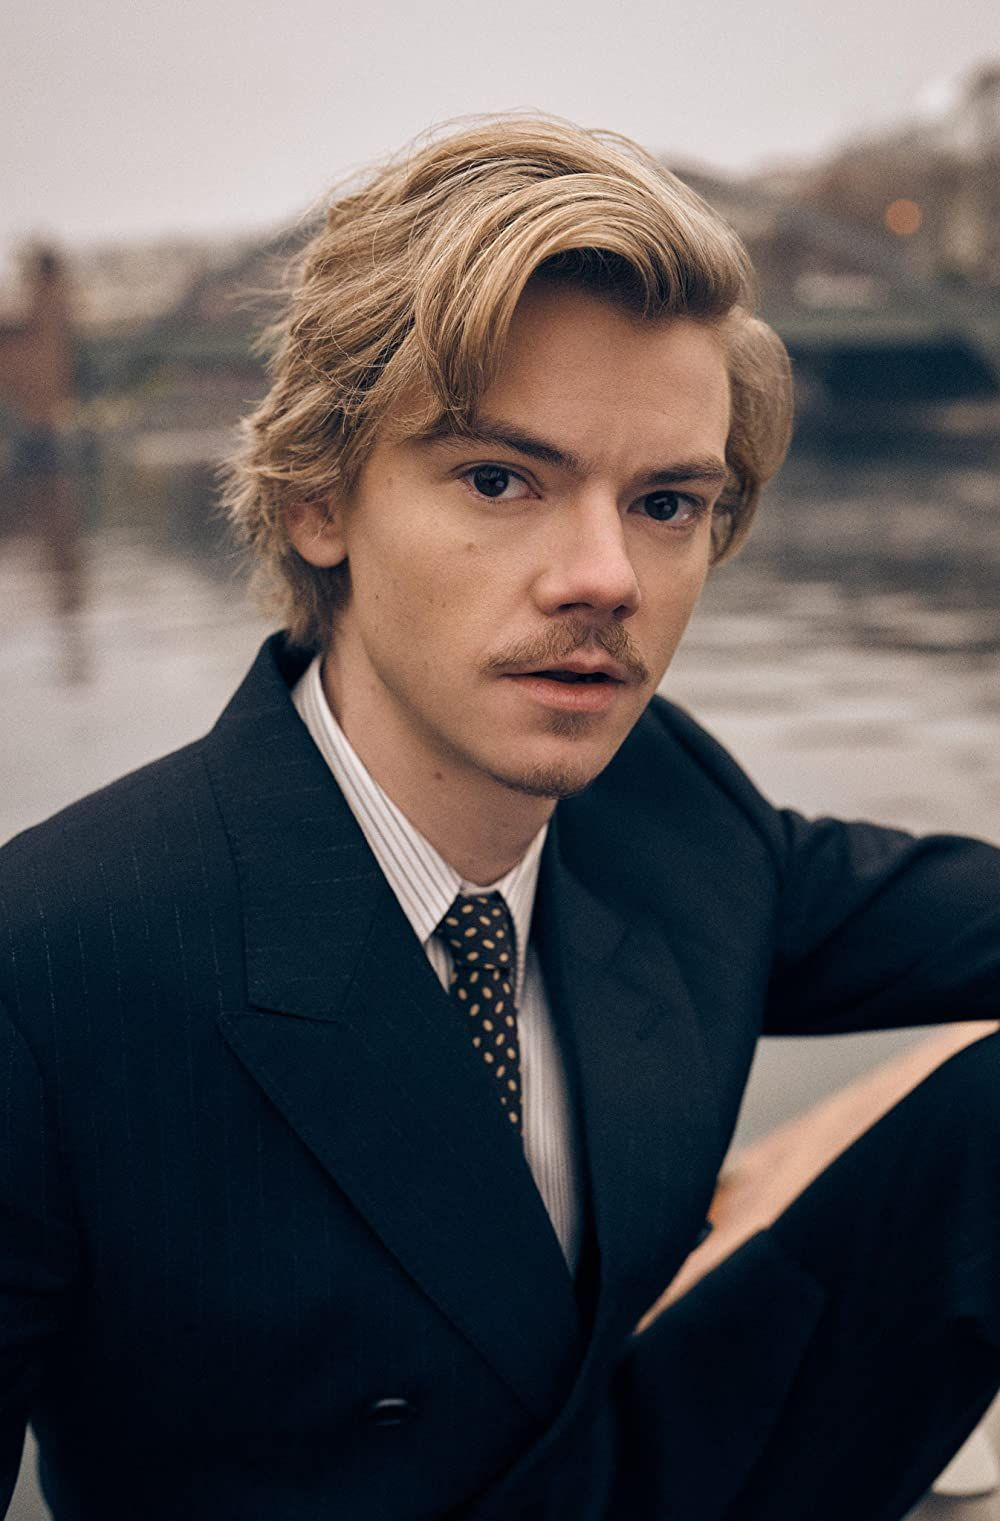 The Queen S Gambit 2020 Thomas Sangster Thomas Brodie Sangster Thomas Brodie